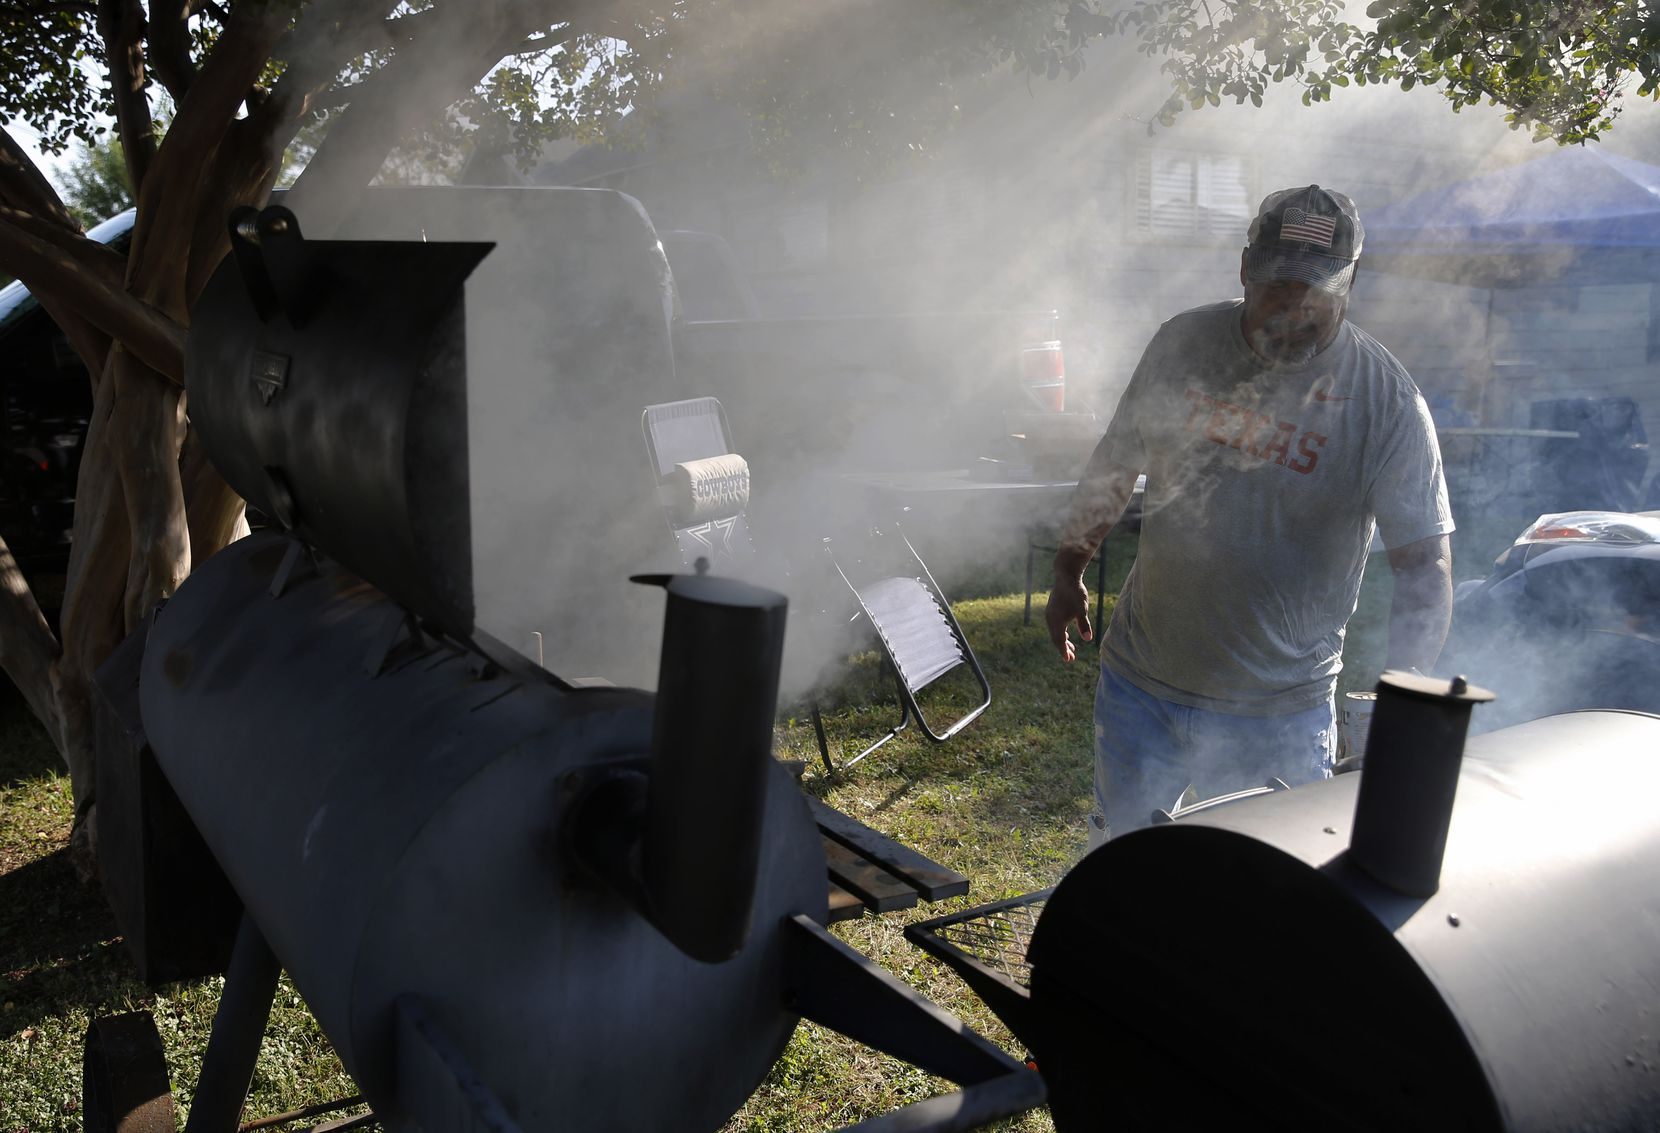 Stacey Walker of Dallas tends to the pit at a friend's house near Fair Park on Saturday, Oct. 10, 2020. The Longhorns fan is cooking in preparation for the arrival of the Sooners fans he sees during the annual Texas vs. Oklahoma football matchup. The group has met up for over a decade.